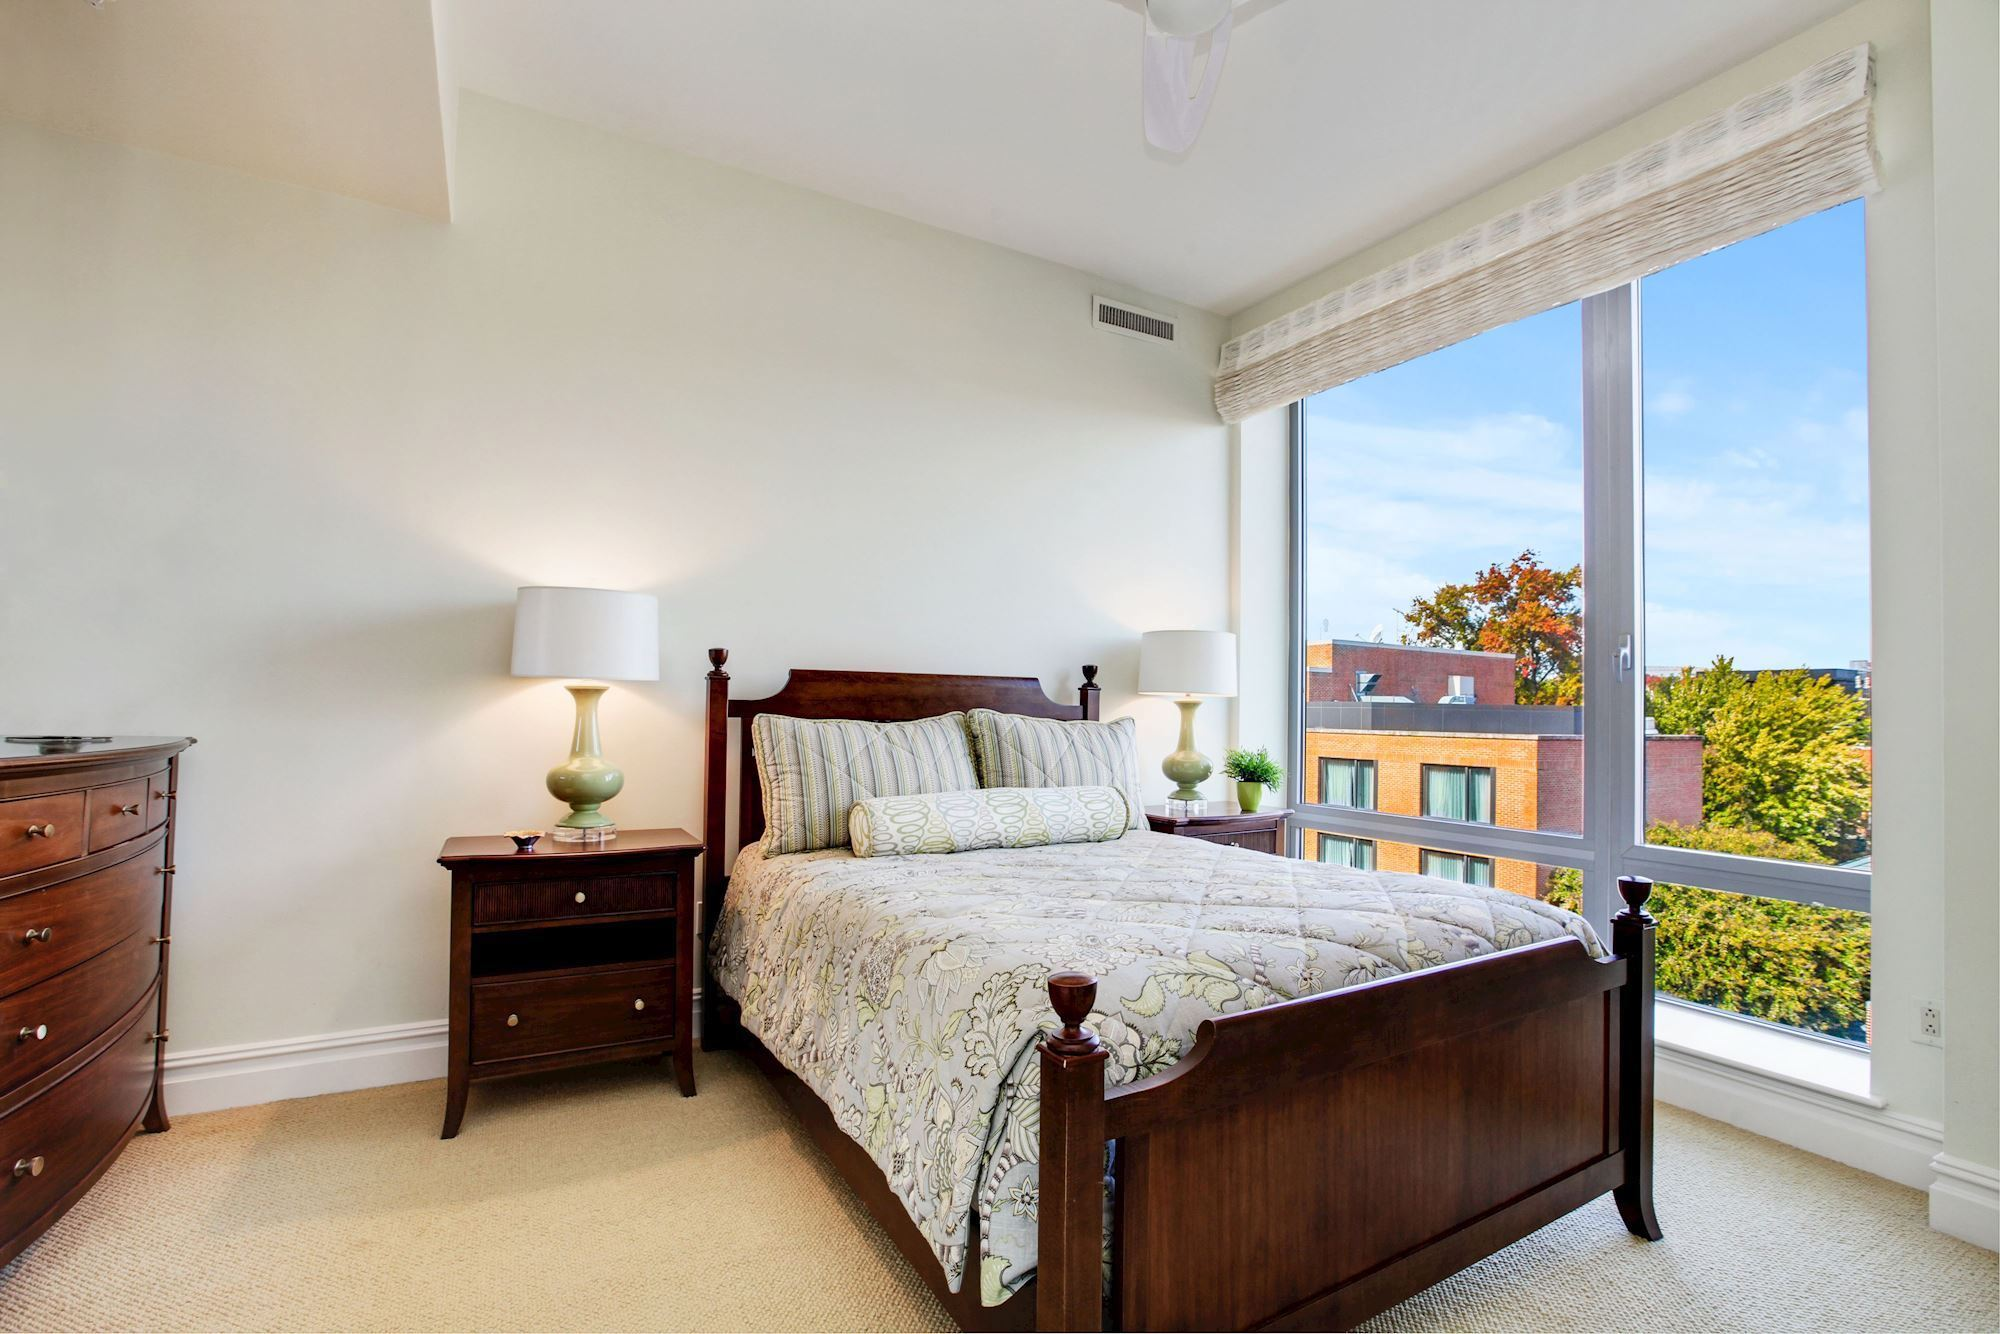 Bedroom Three offers Georgetown Views